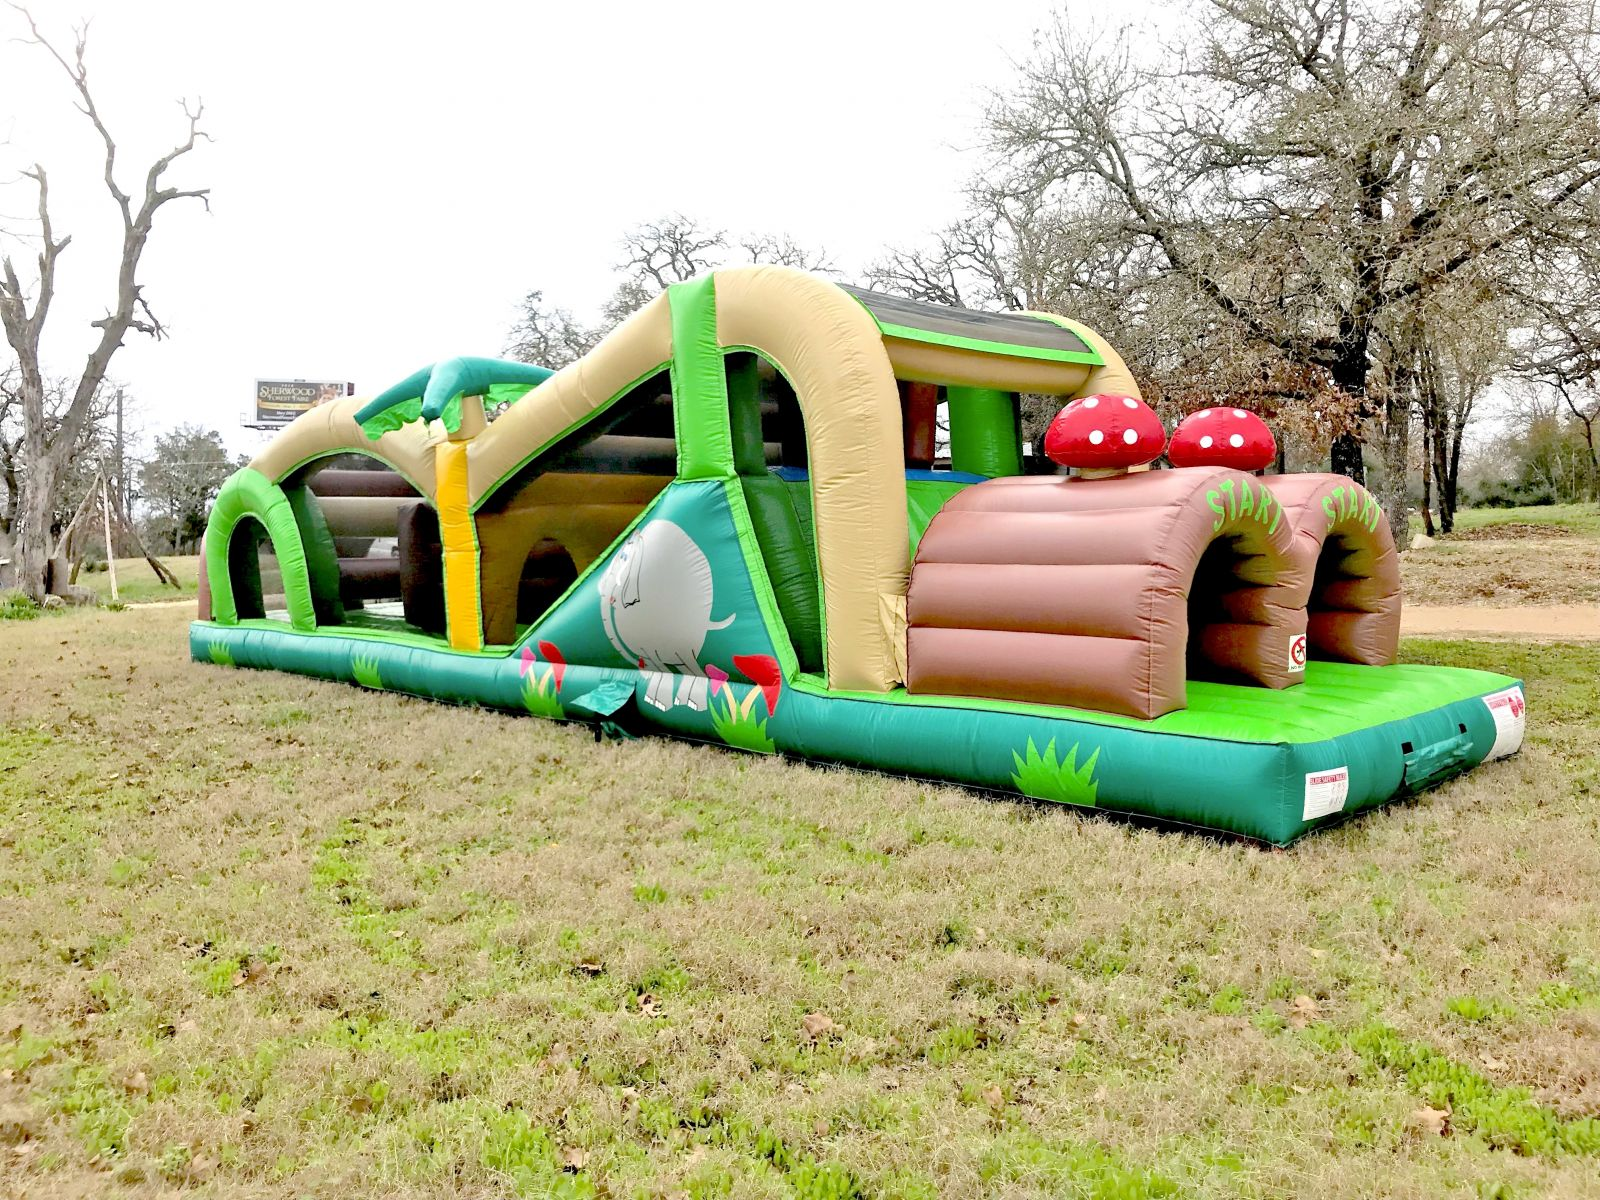 Exteme Obstacle Course rental in Austin Texas from Austin Bounce House Rentals